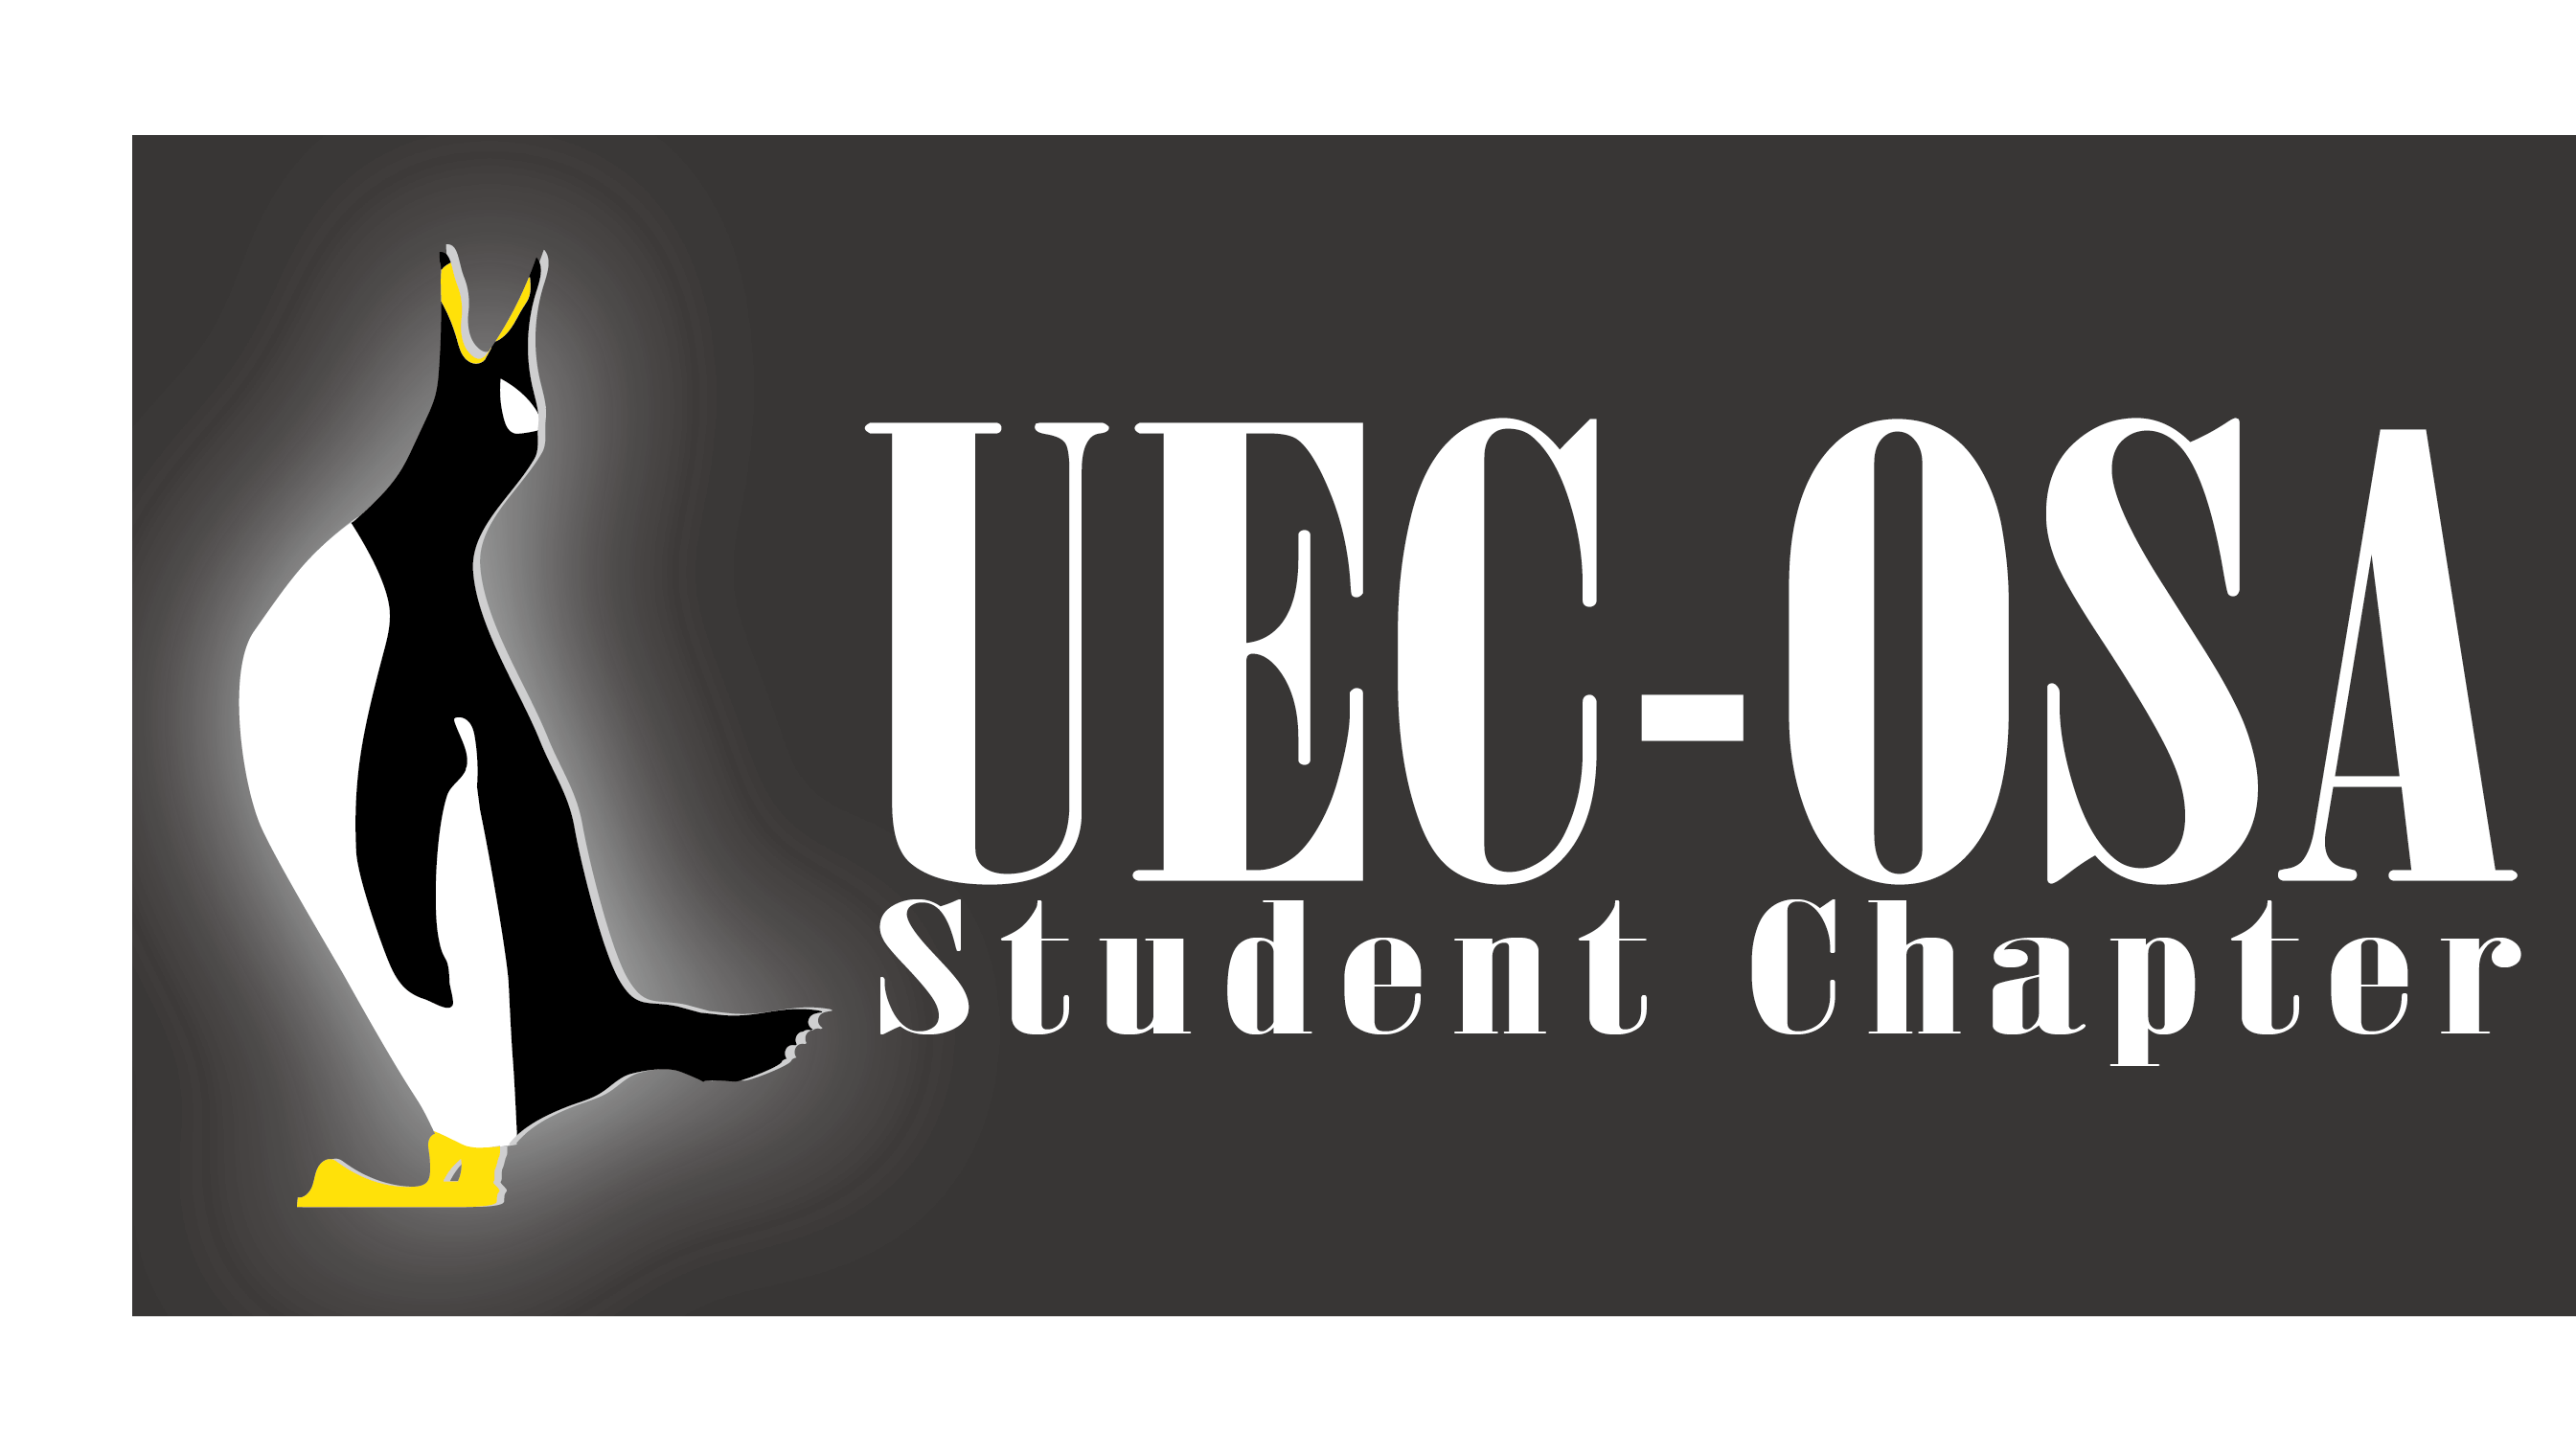 UEC-OSA Student Chapter